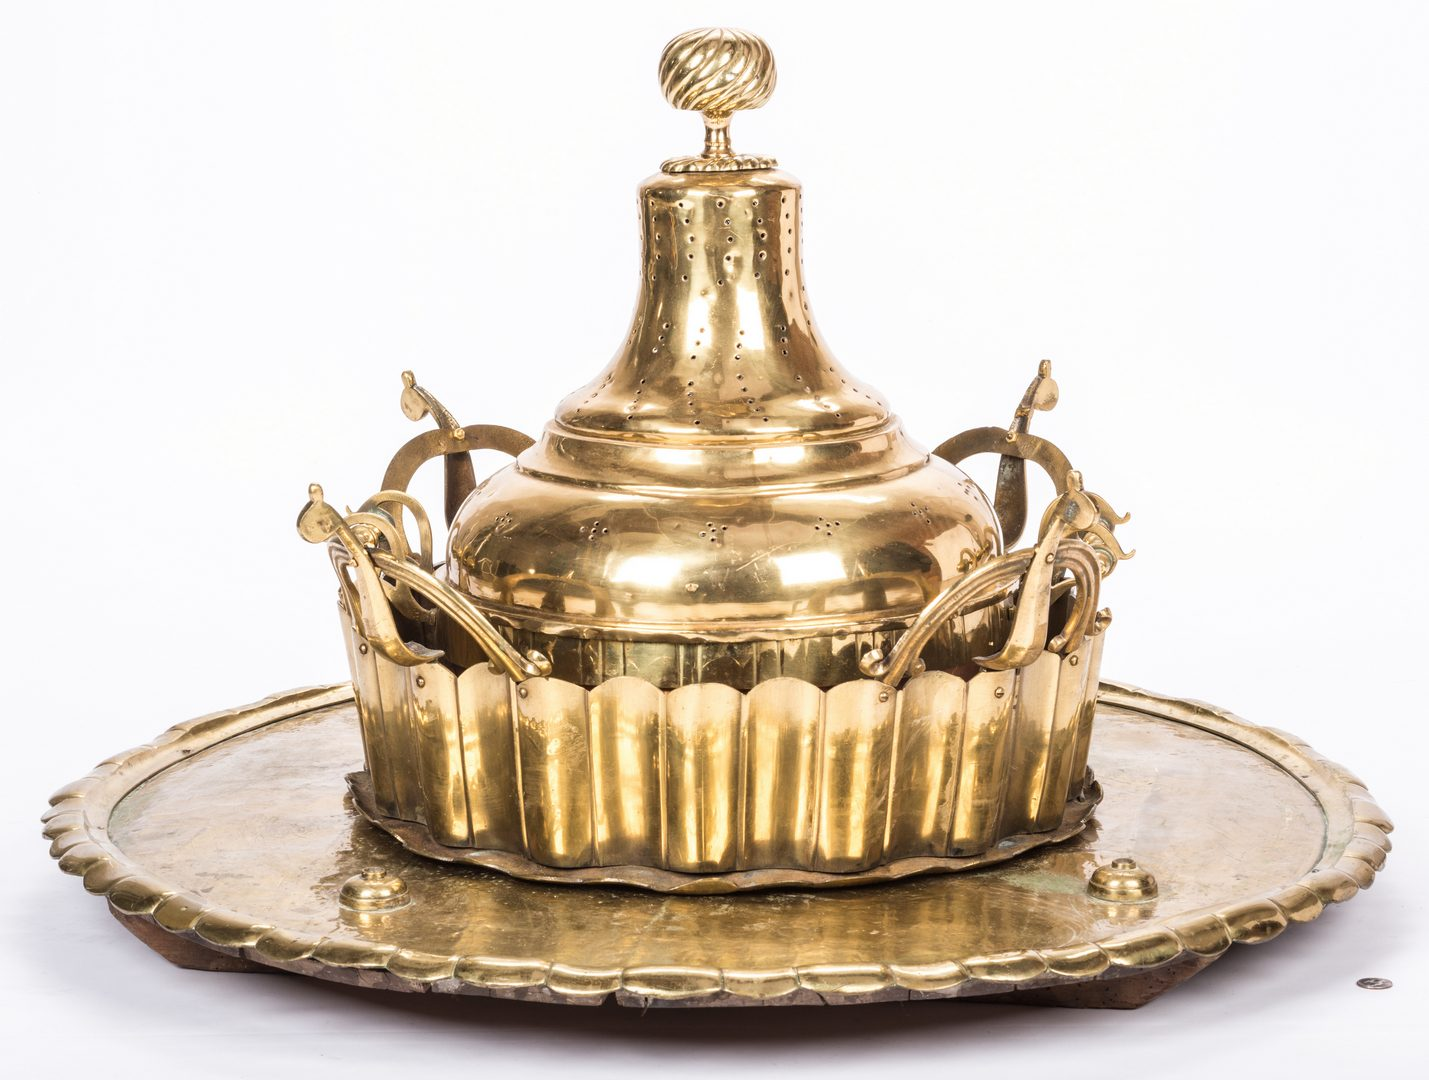 Lot 766: Large Brass Brazier or Censer with tray, 4 pcs.